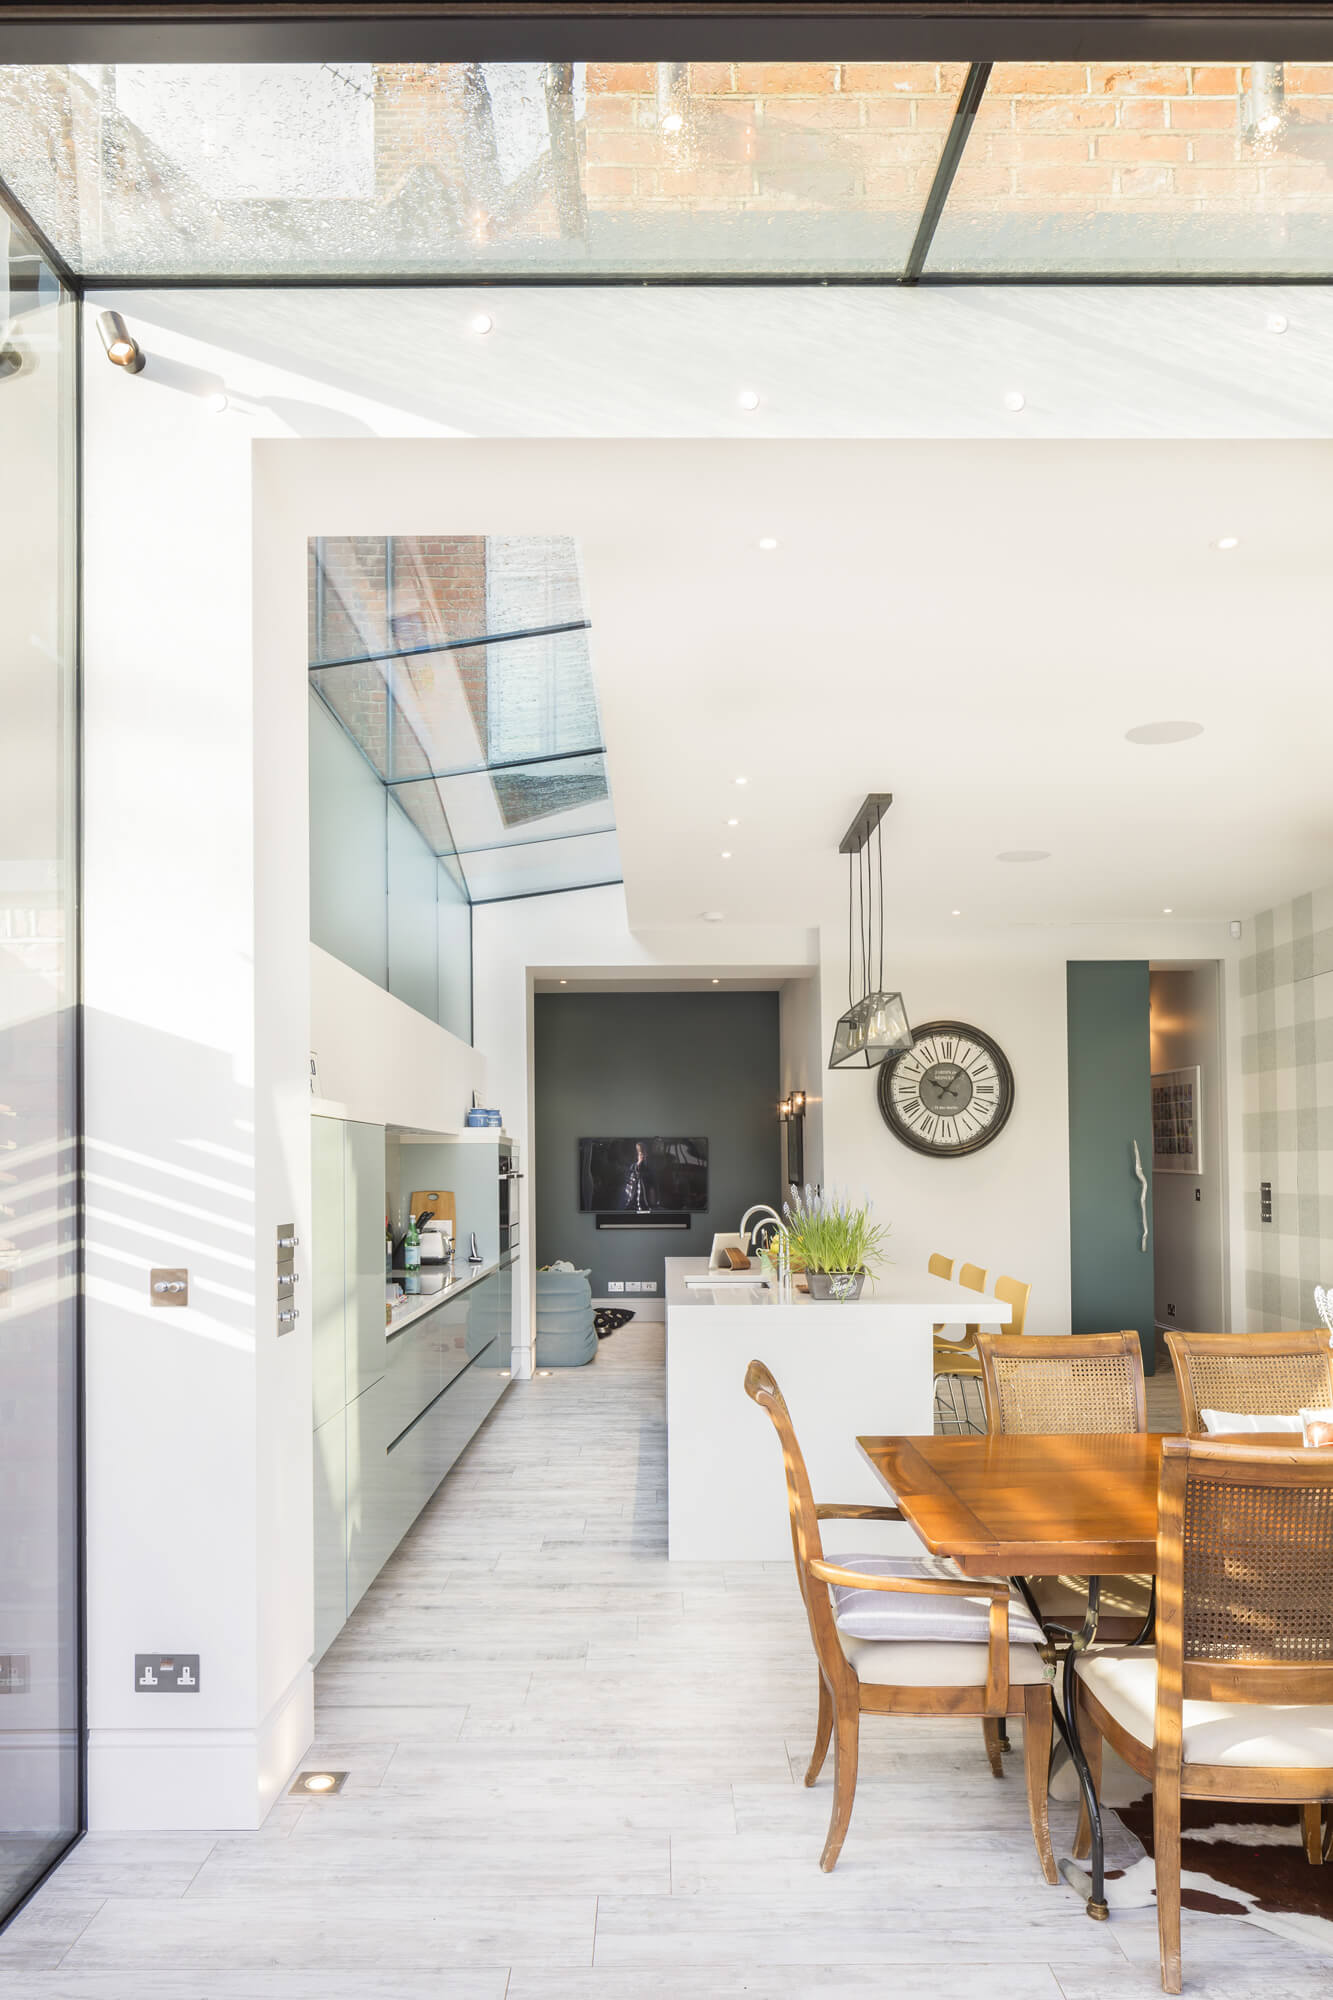 Marguerite Murdoch Architects - Based in Teddington, Richmond Upon Thames - Latest Project - Glass Extension